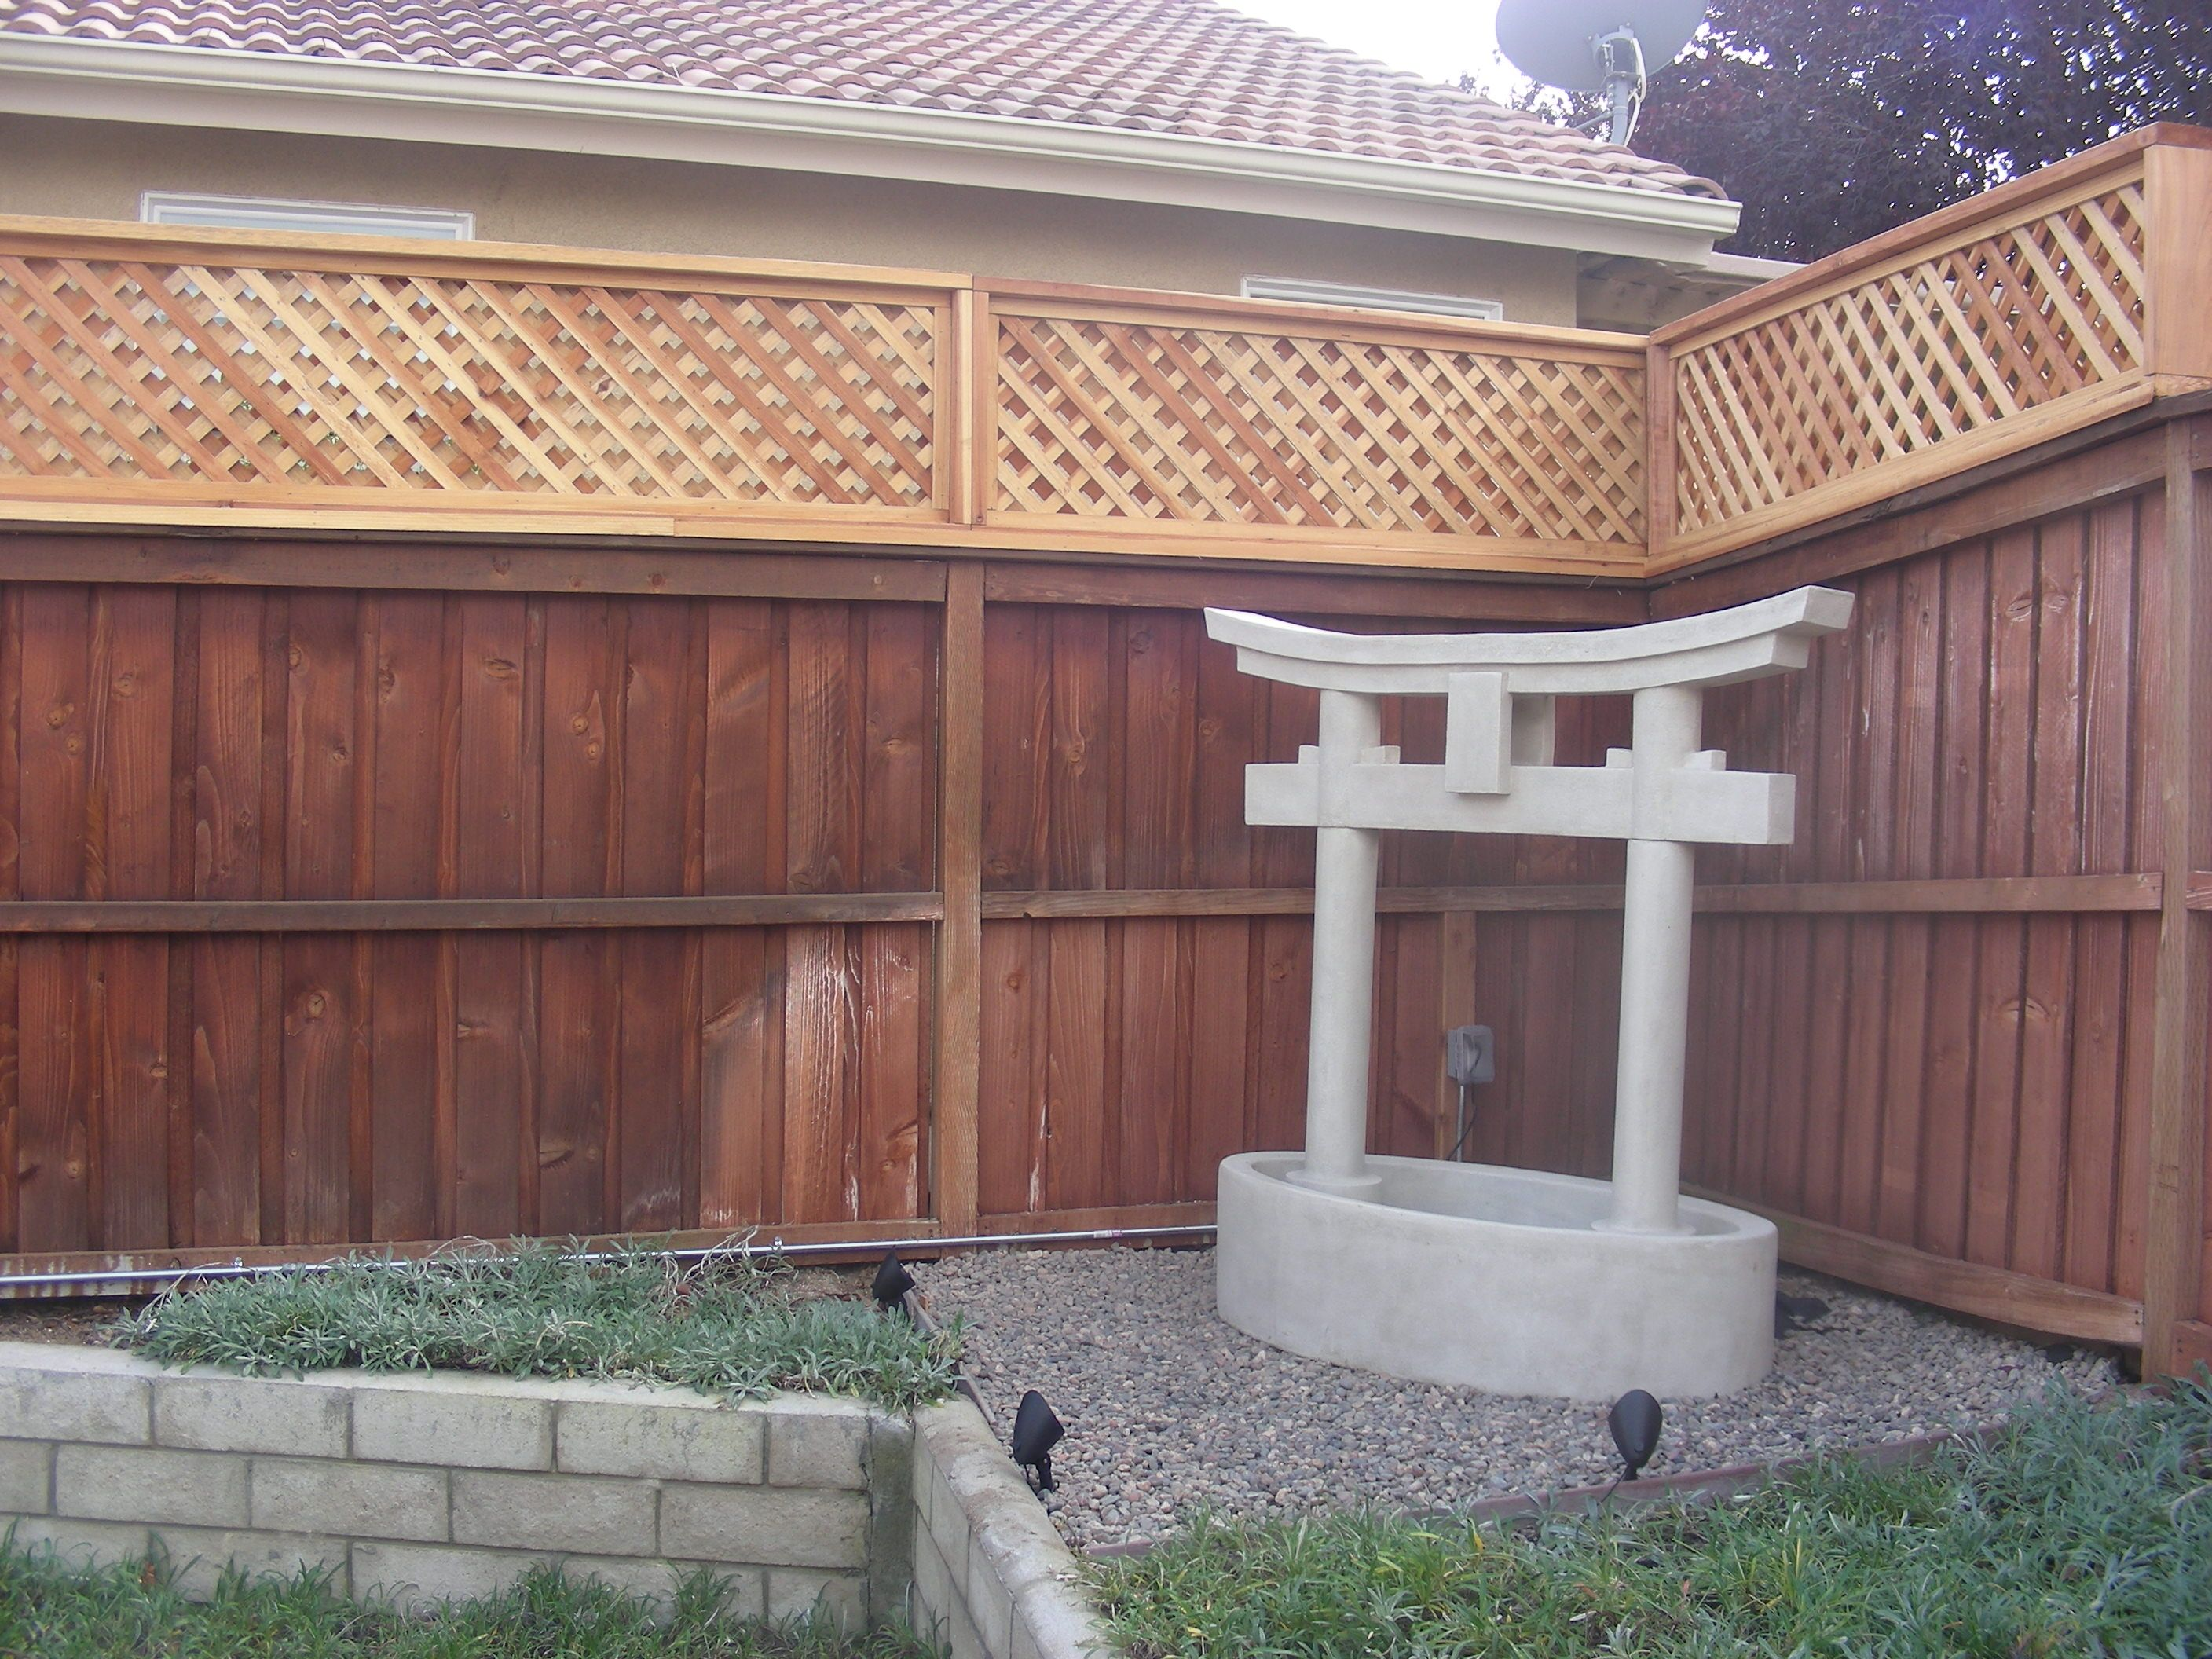 add lattice to extend height of privacy fence privacy fence